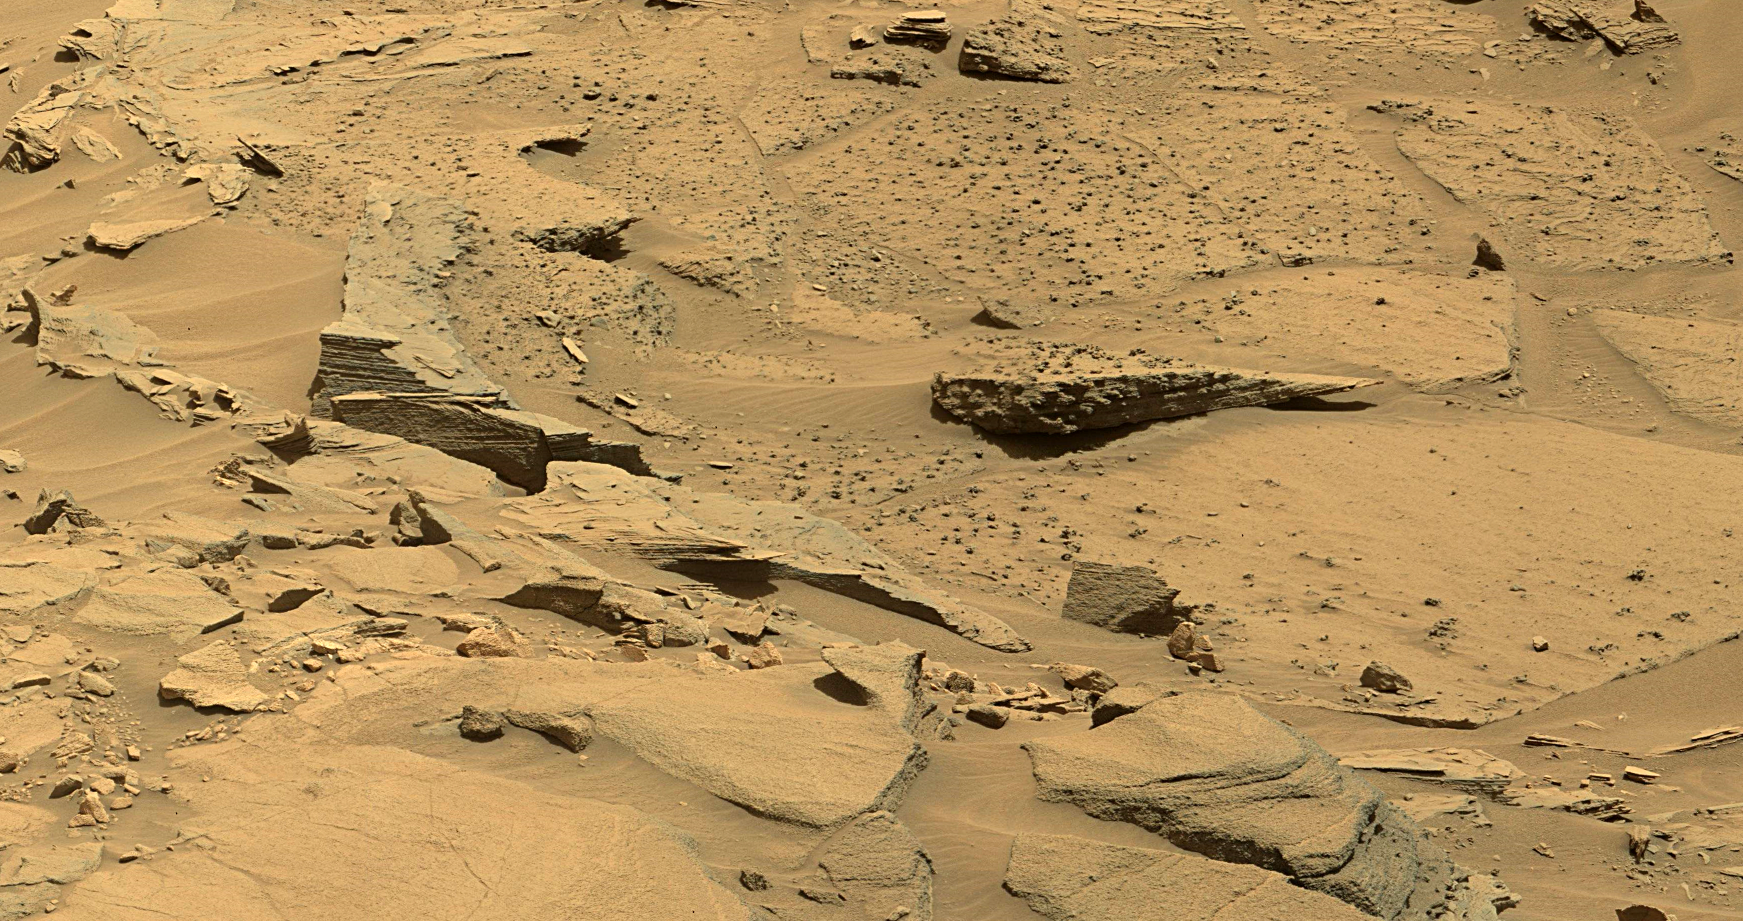 mars sol 1346 anomaly-artifacts 17 was life on mars